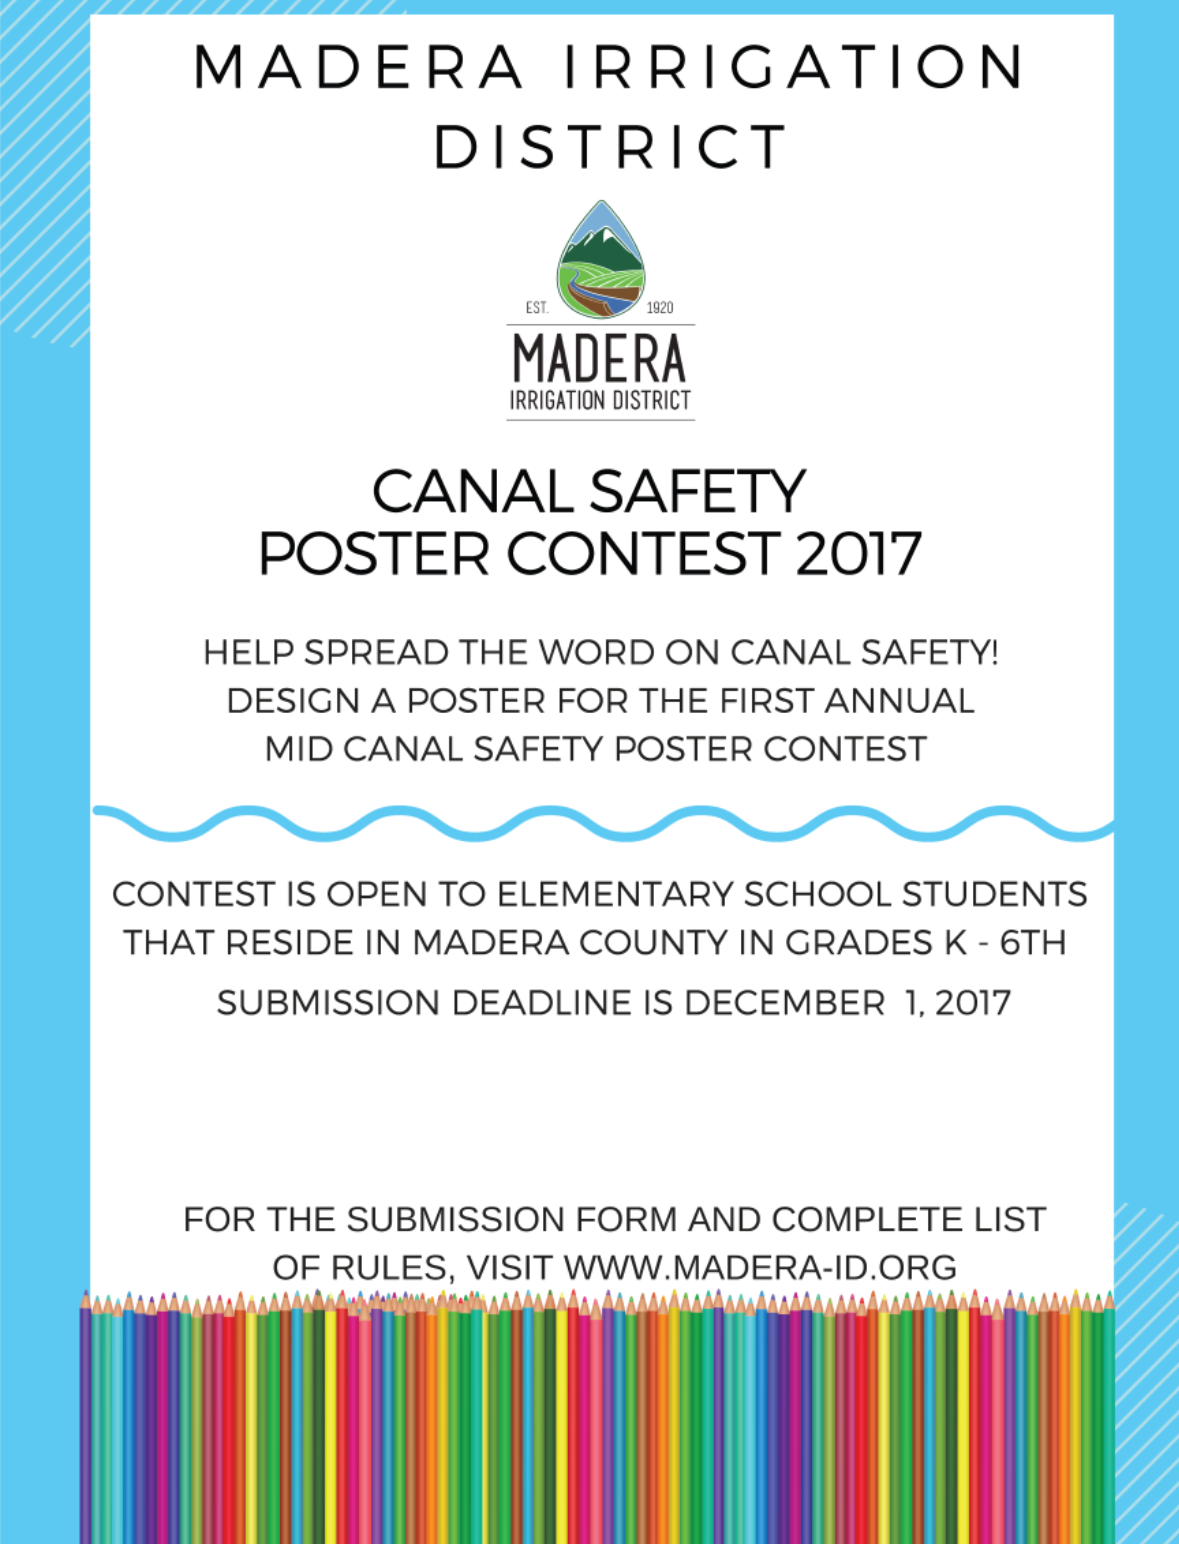 Canal Safety Poster Contest 2017